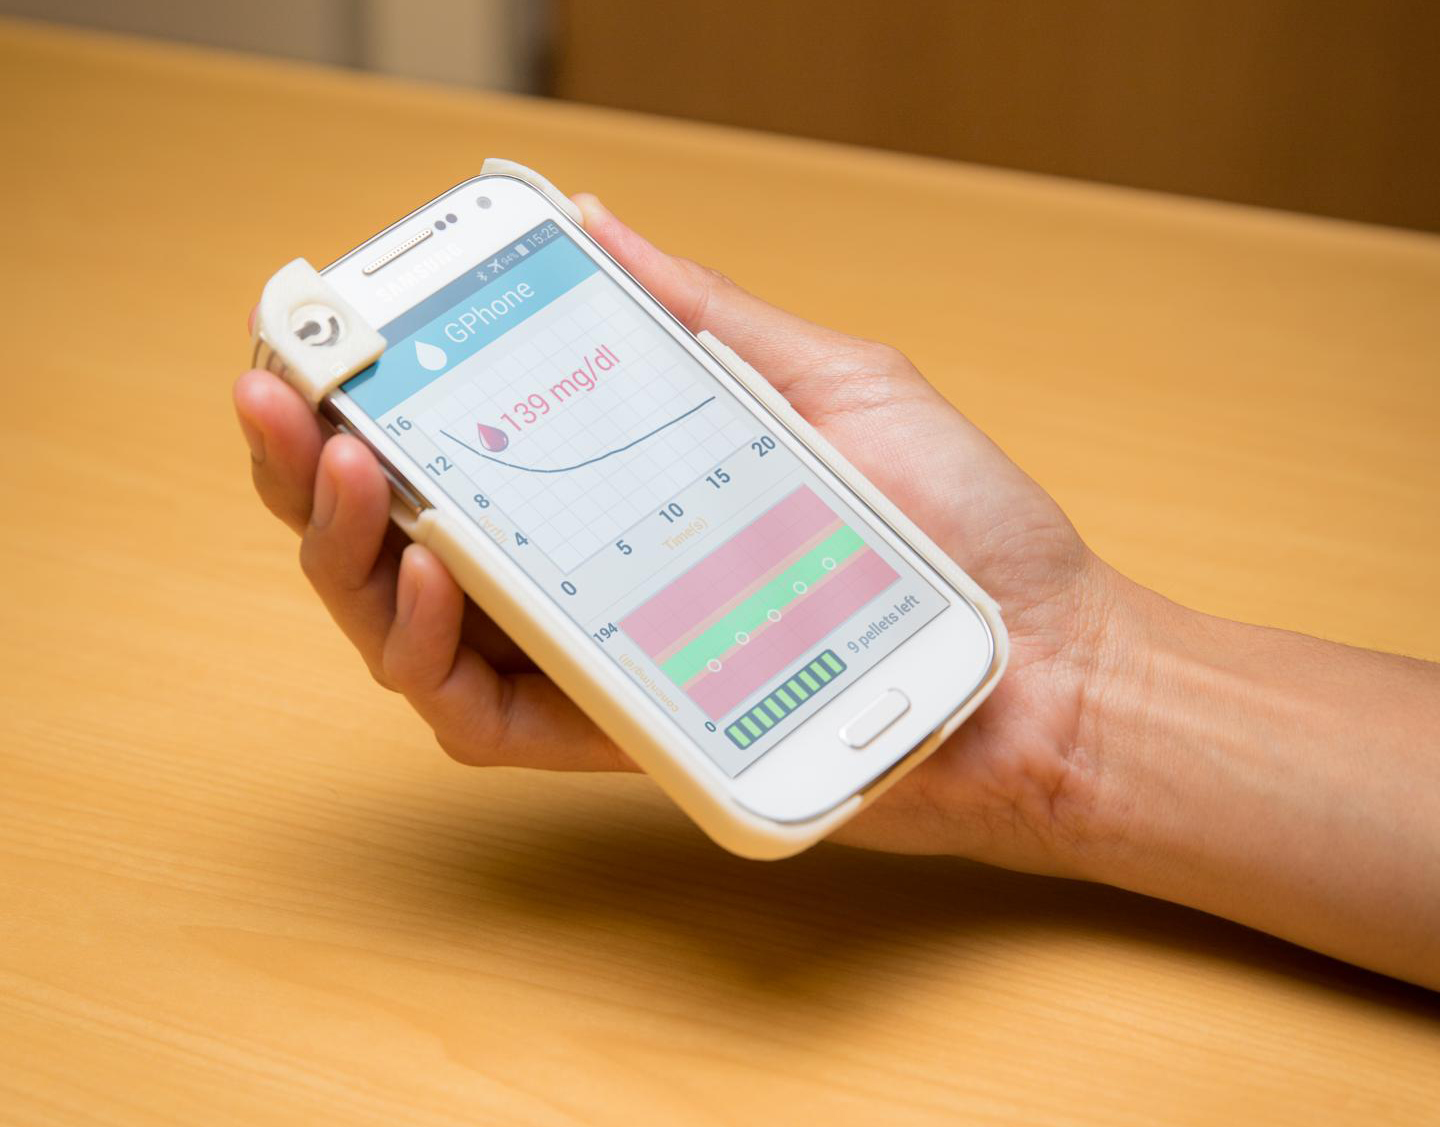 This custom-designed Android app displays test results on a smartphone screen. [David Baillot/UCSD Jacobs School of Engineering]